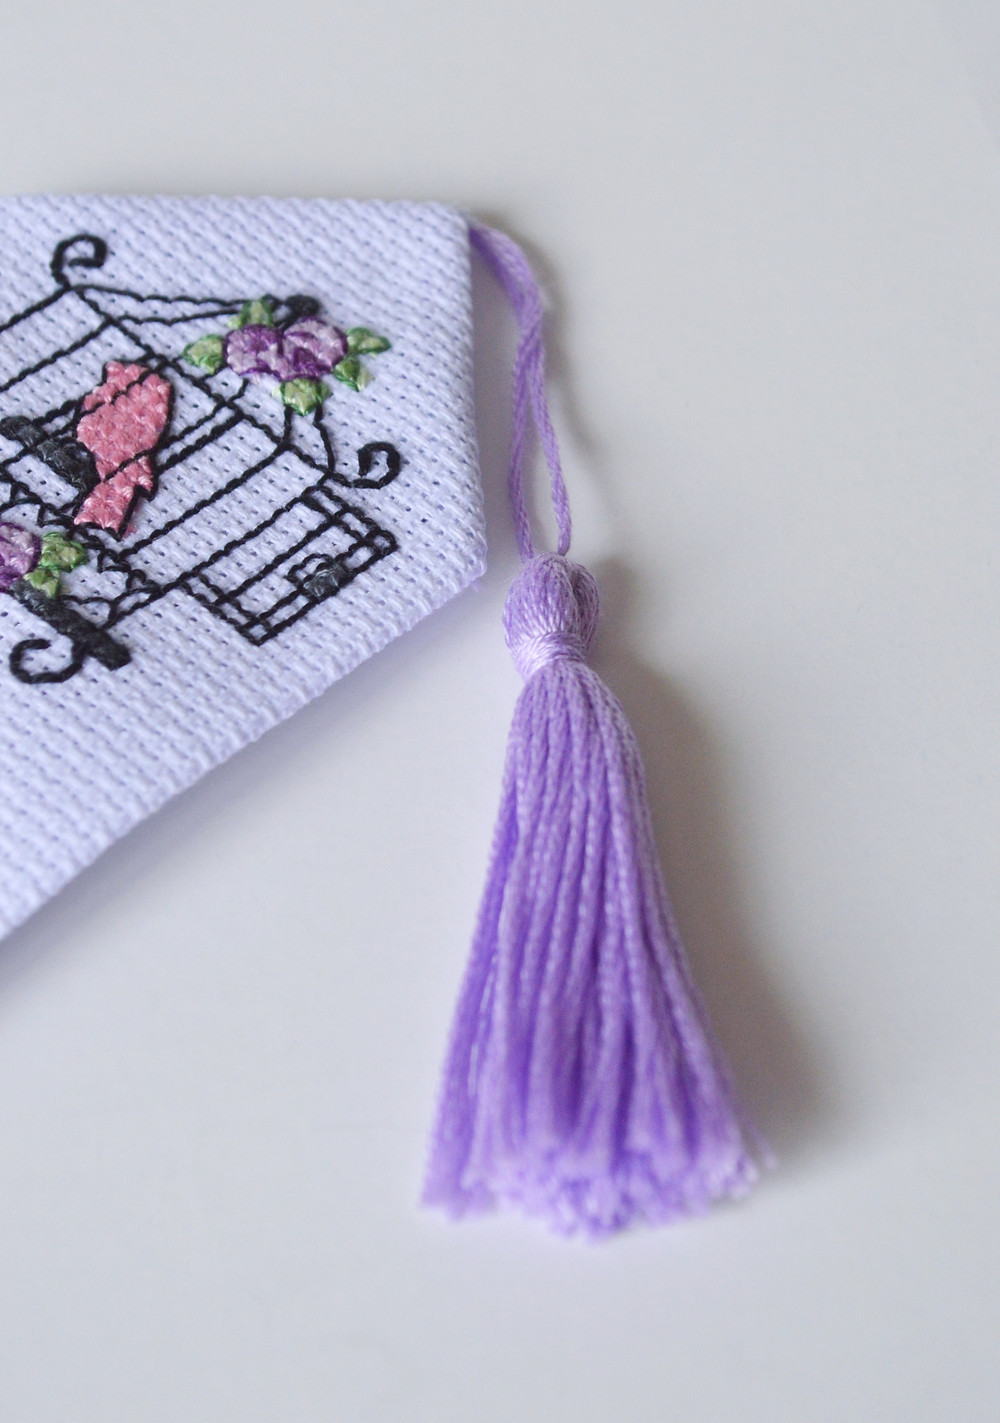 A cross stitch bookmark sits on a table. At the top end of the aida fabric, a purple tassel is attached.